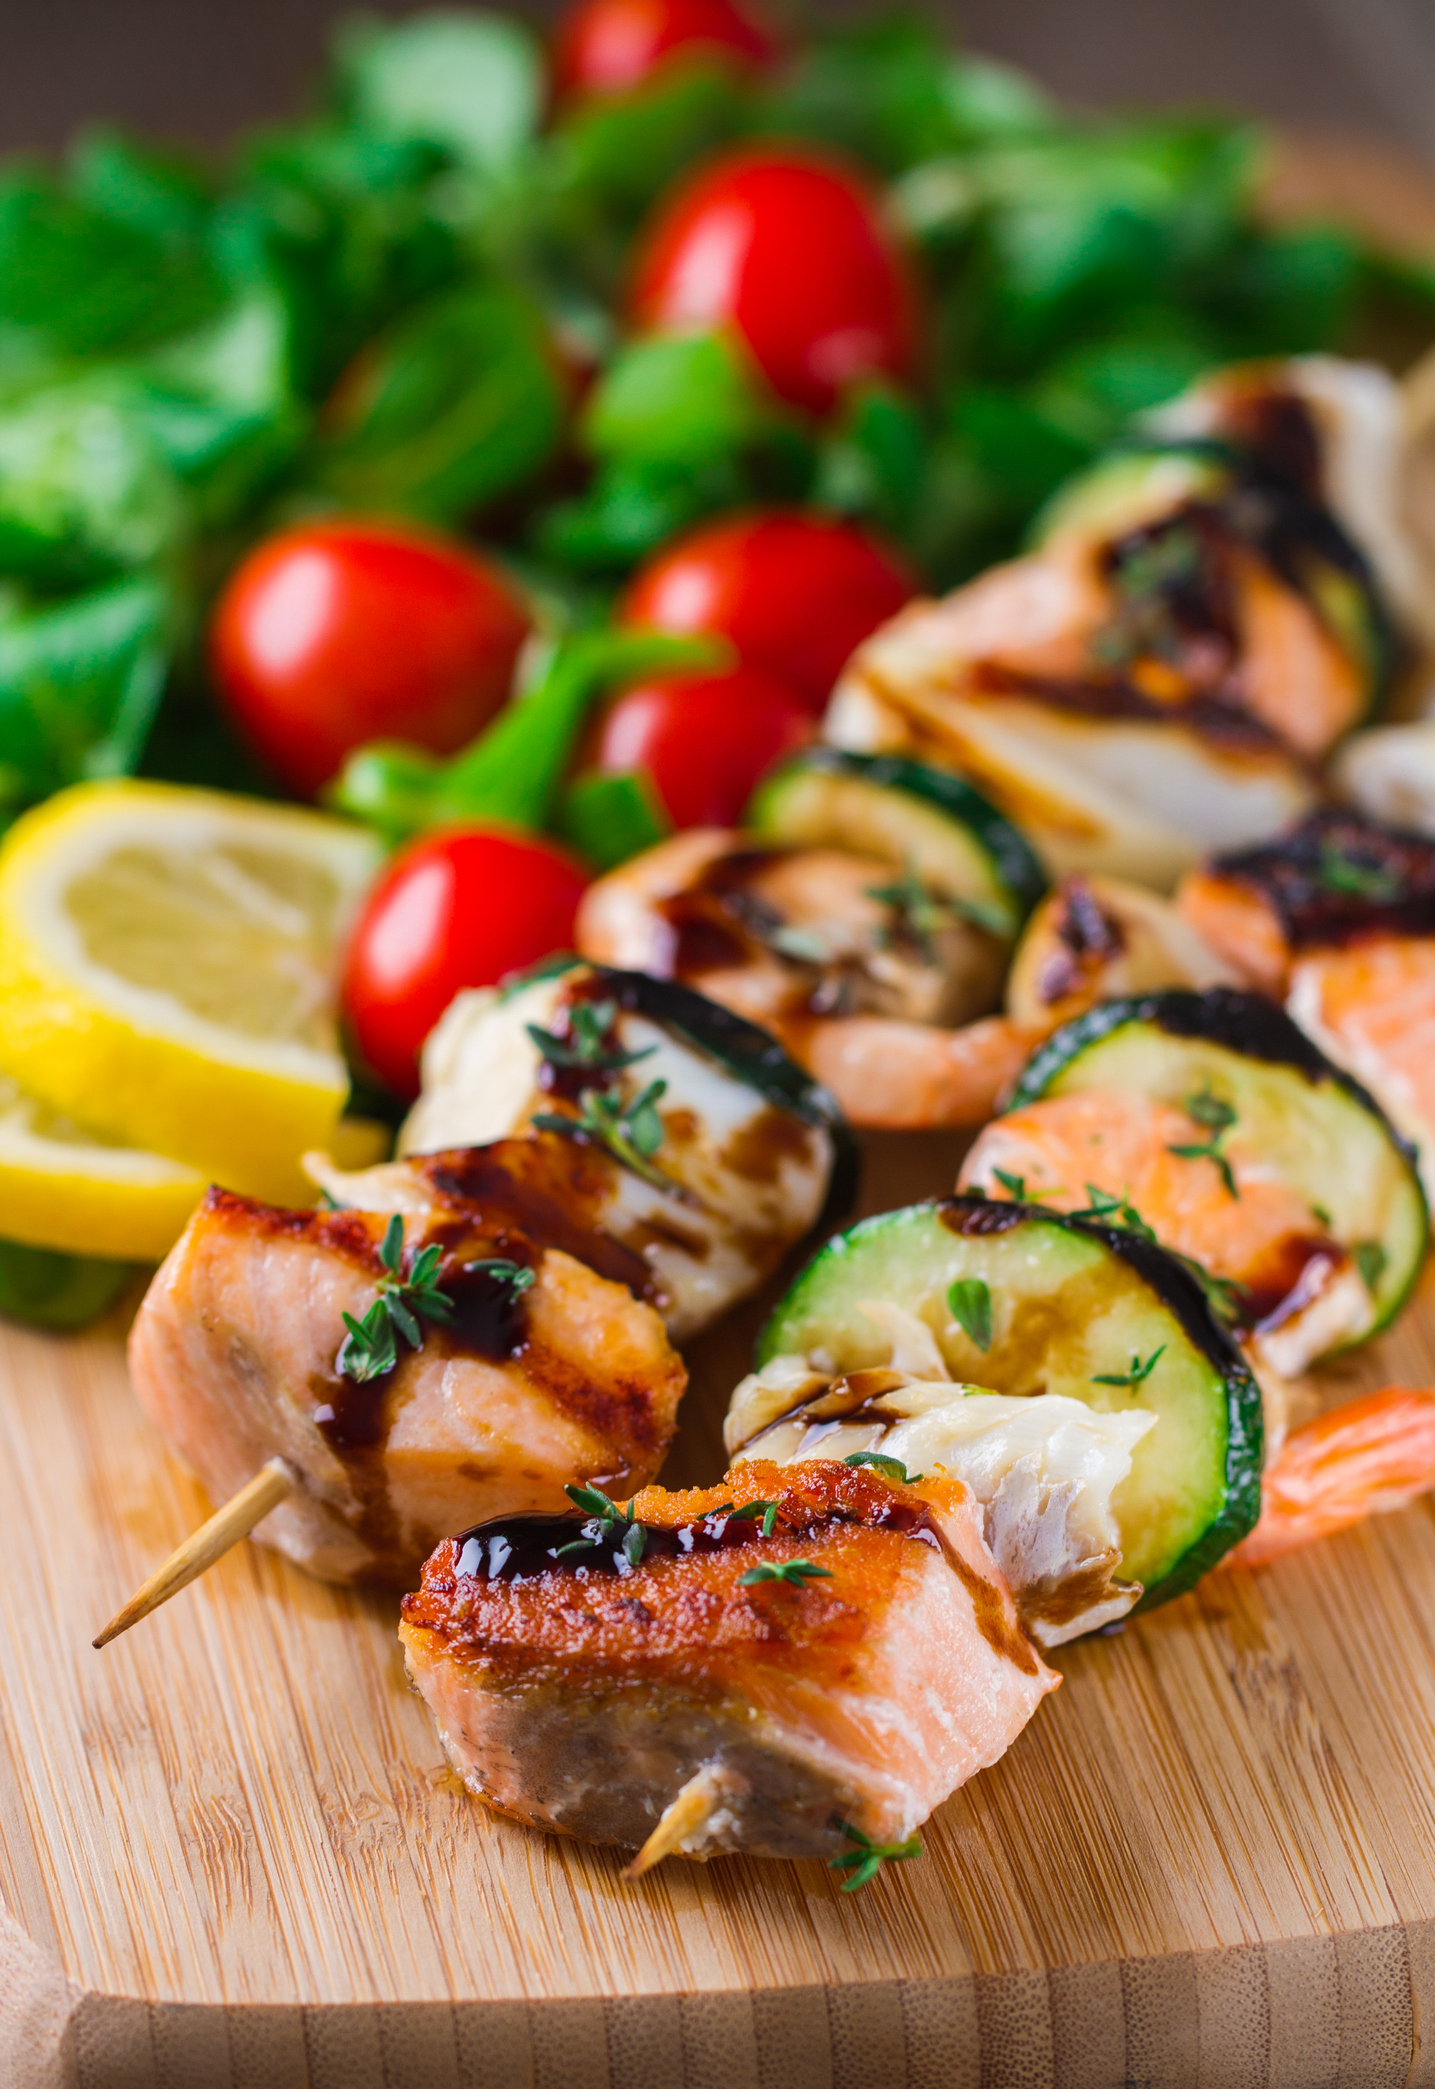 Salmon, shrimp, and veggie skewers on a board